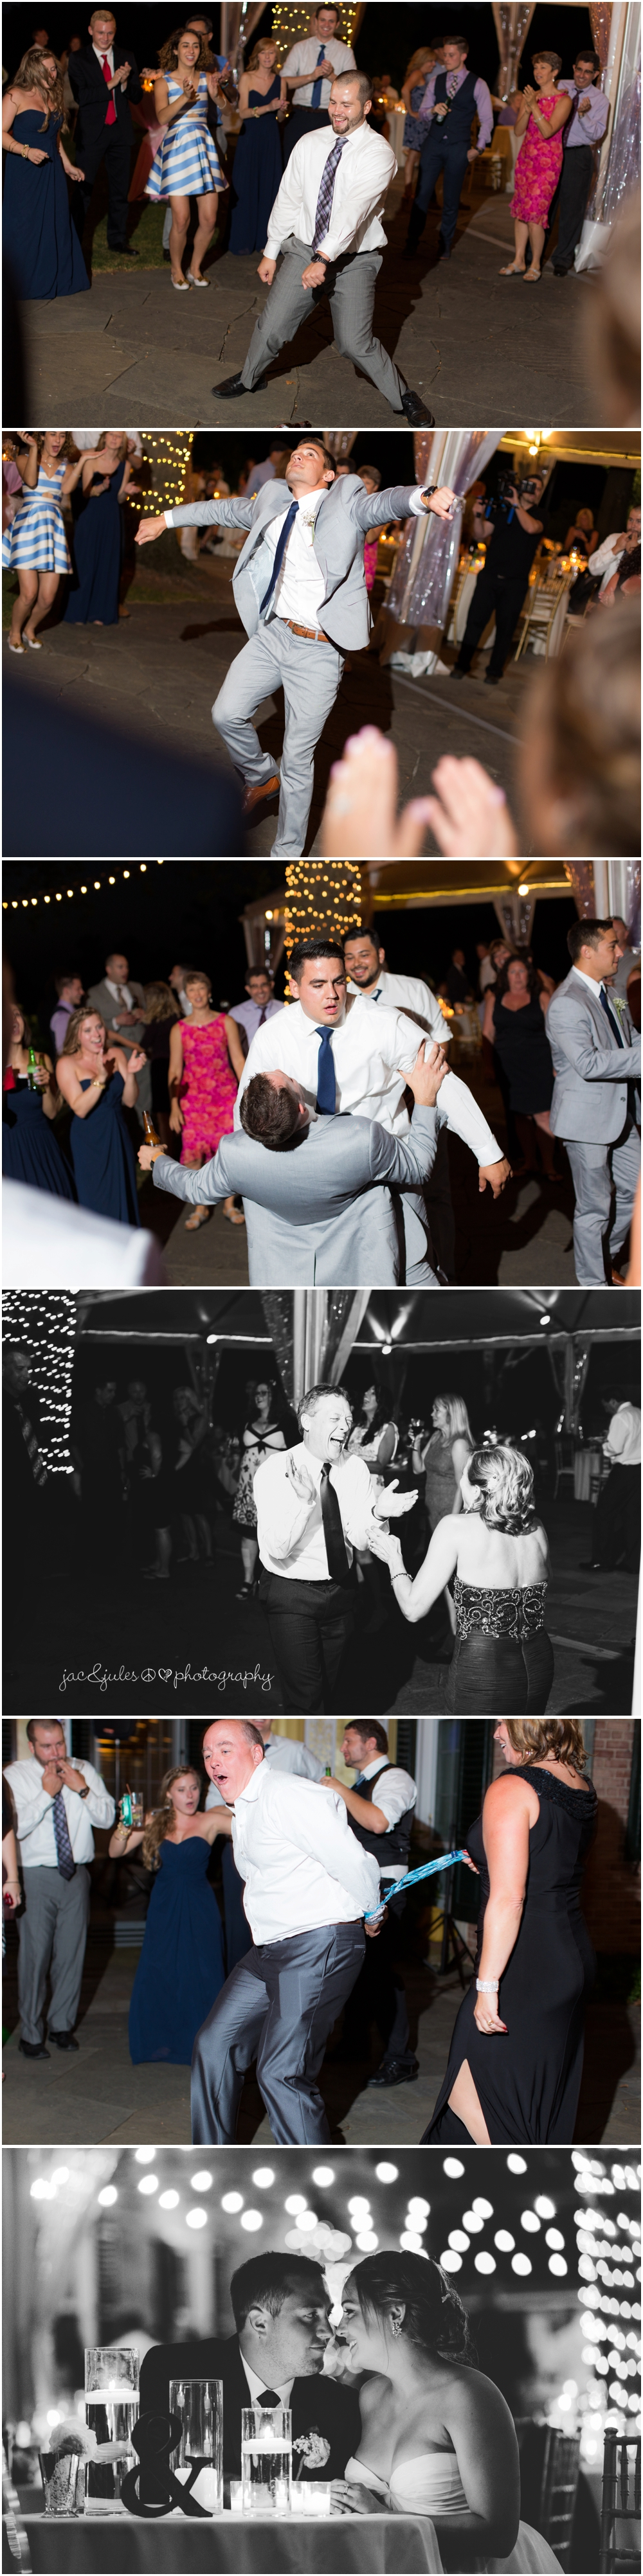 jacnjules photographs a wedding reception at drumore estate in pa